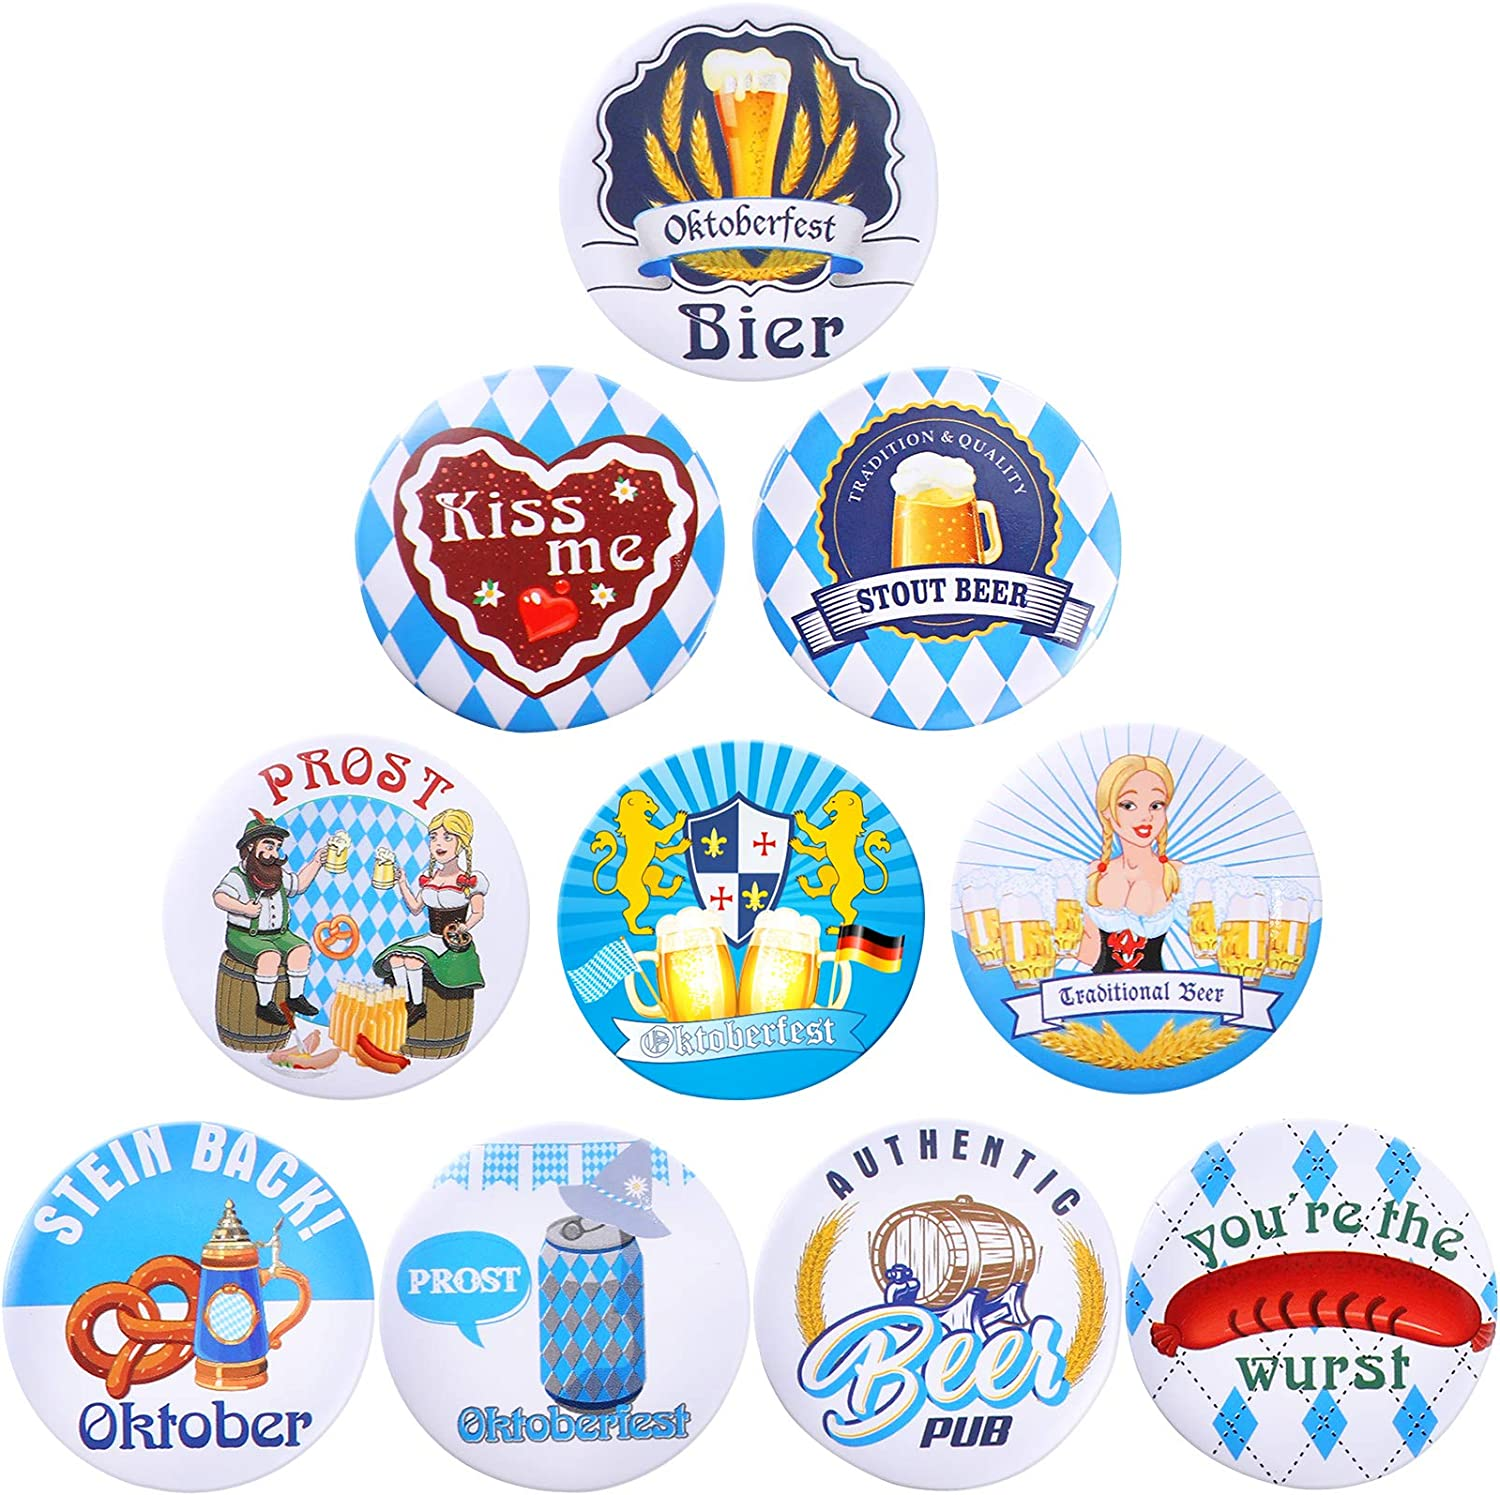 30 Pieces Oktoberfest Buttons Pins Bavarian Style Badges, 10 Different Patterns Oktoberfest Festivities Printed Pins Buttons for Oktoberfest Party Supplies and Decorations